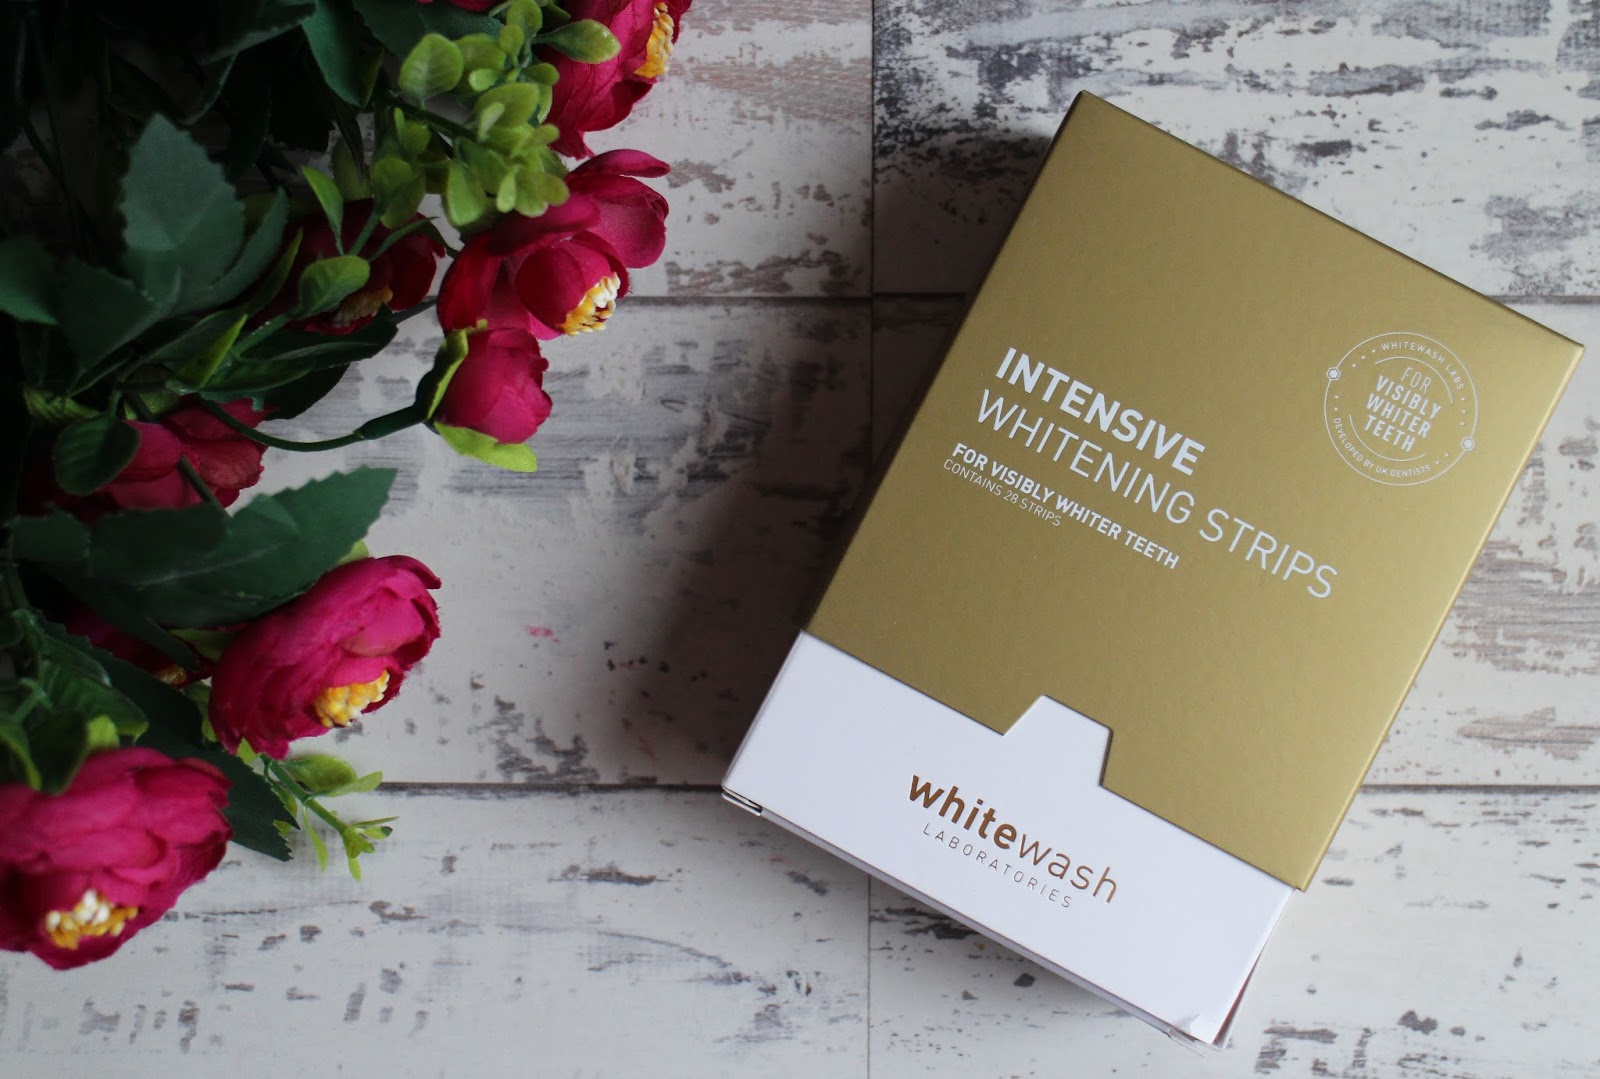 Whitewash Laboratories Nano Intensive Whitening Strips